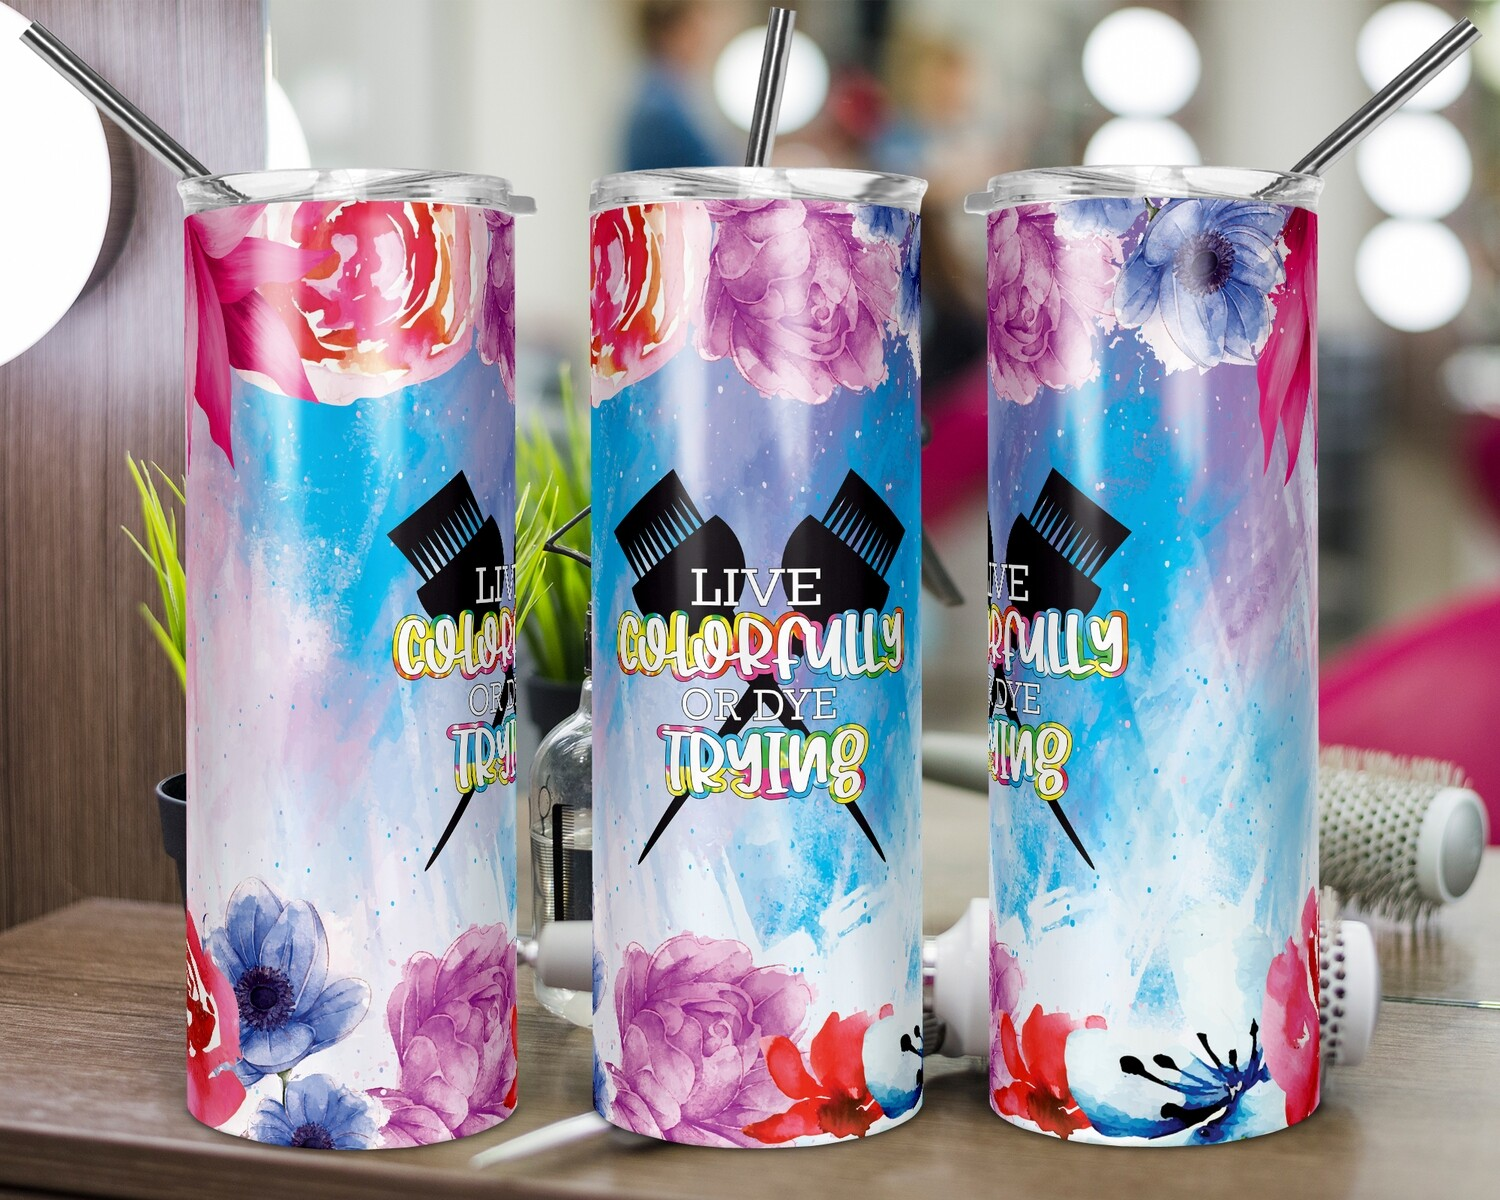 Live Colorfully or DYE Trying -  20oz Skinny TUMBLER PNG Sublimation